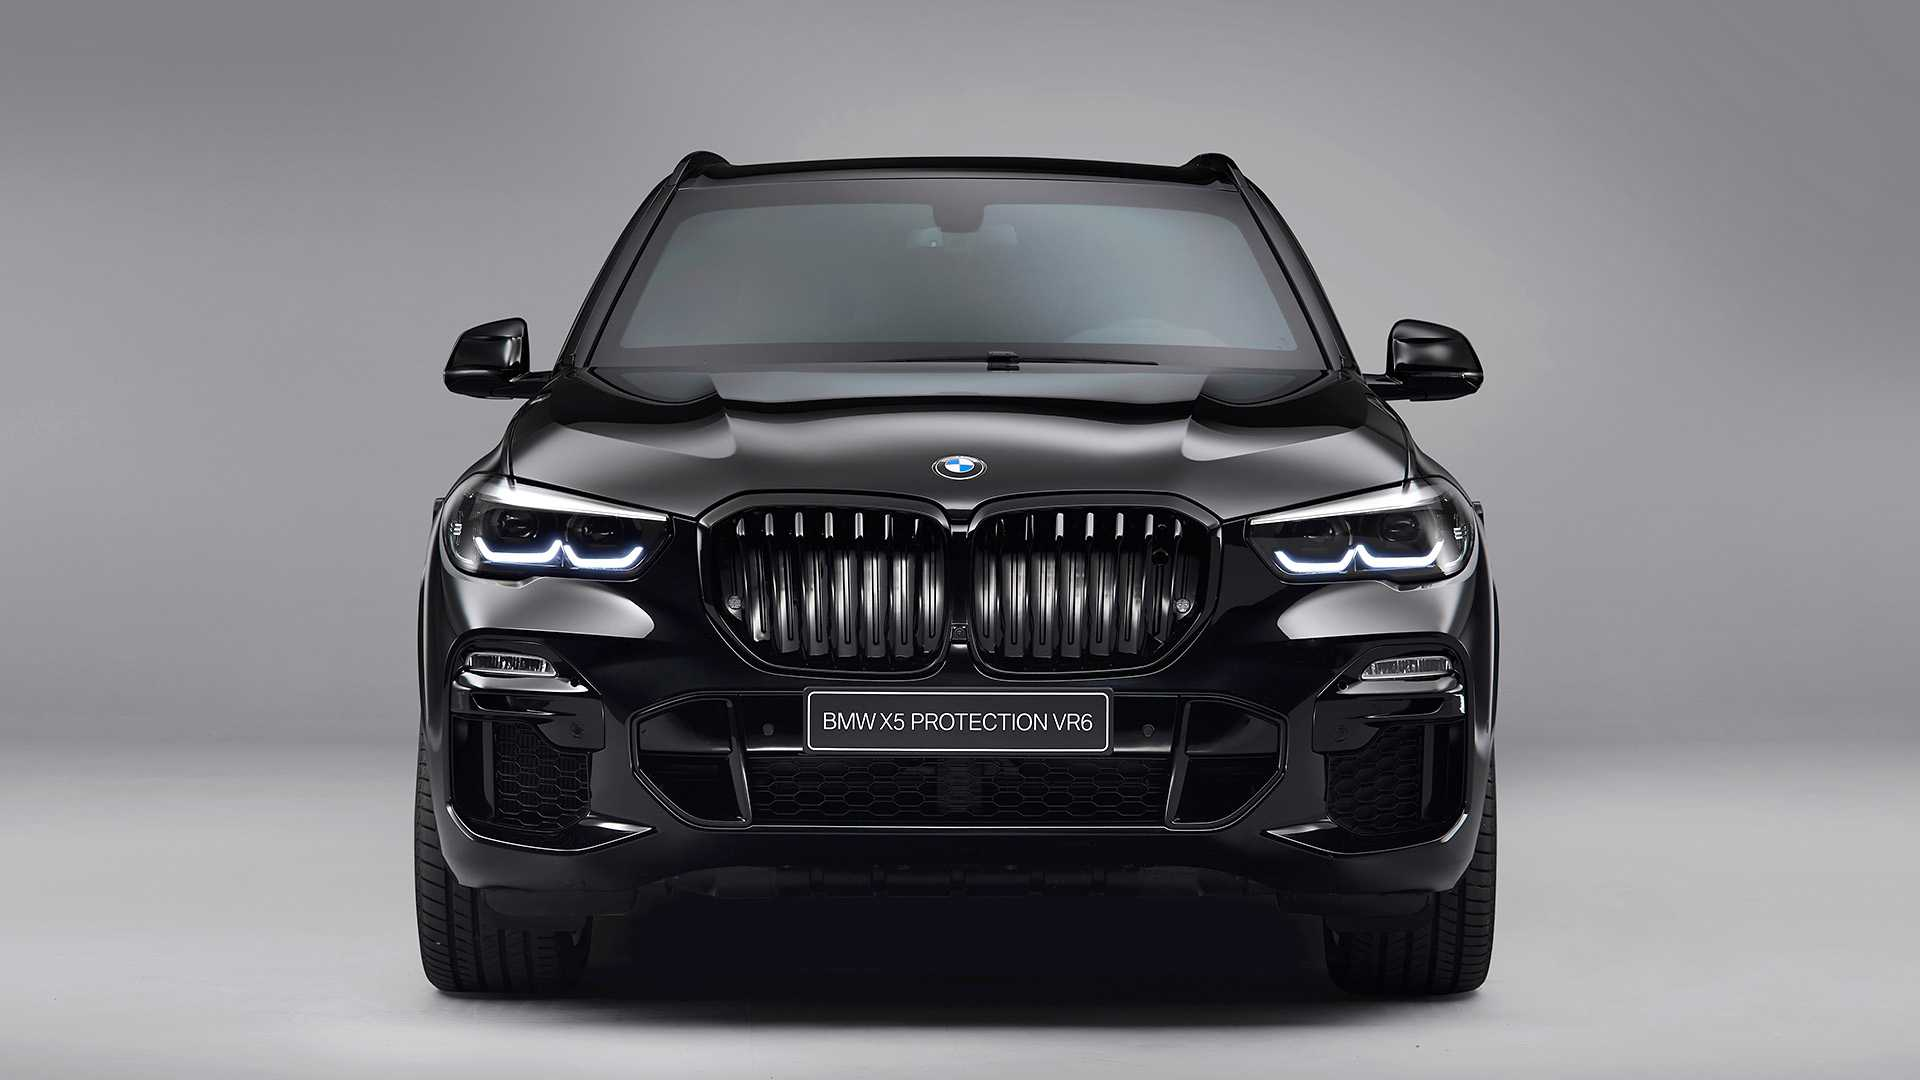 2020 BMW X5 Protection VR6 (Armored Vehicle) Front Wallpapers (2)